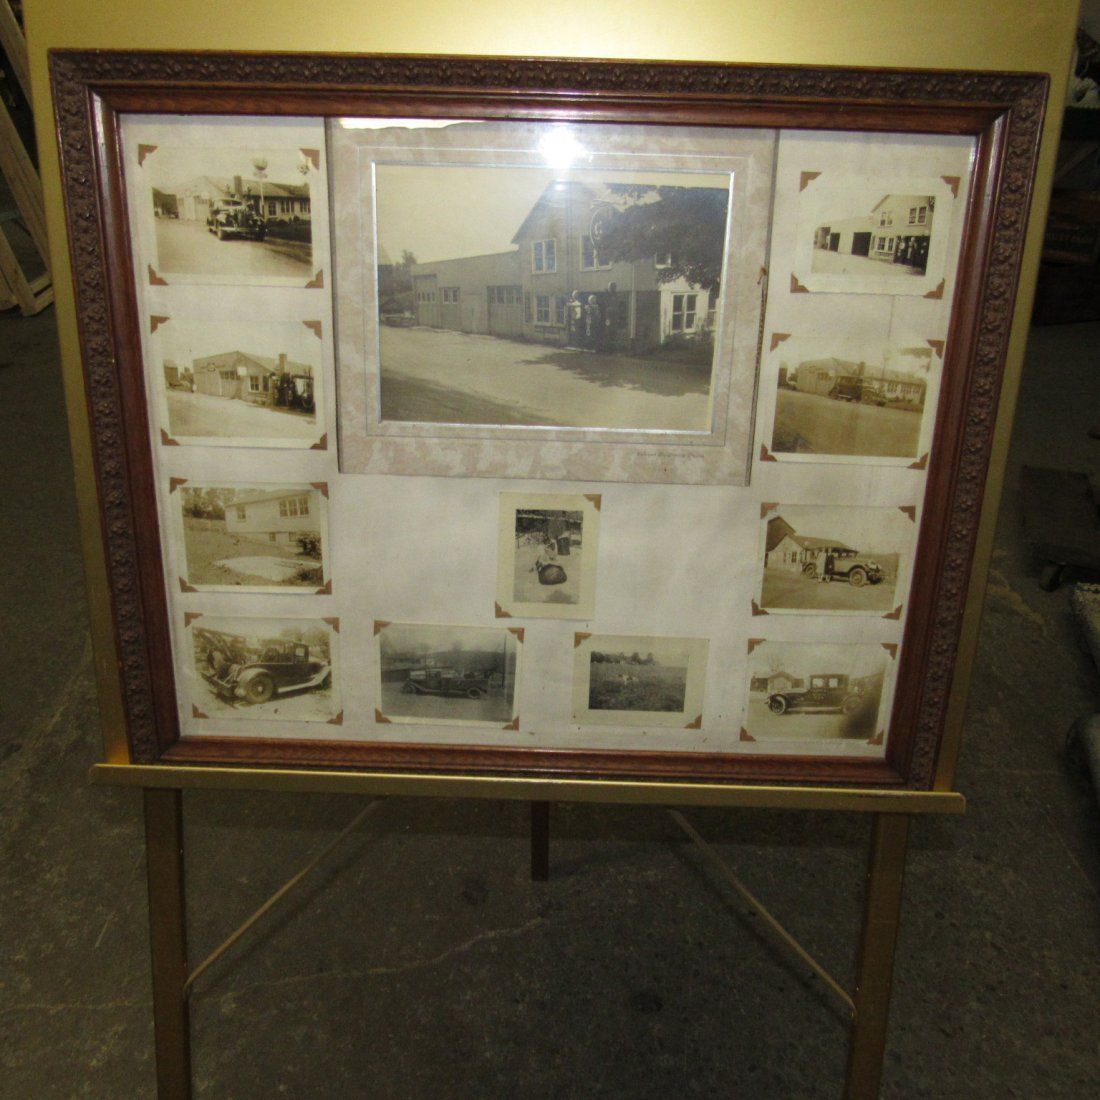 PITTSTOWN NJ FRAMED SERVICE STATION PHOTOS